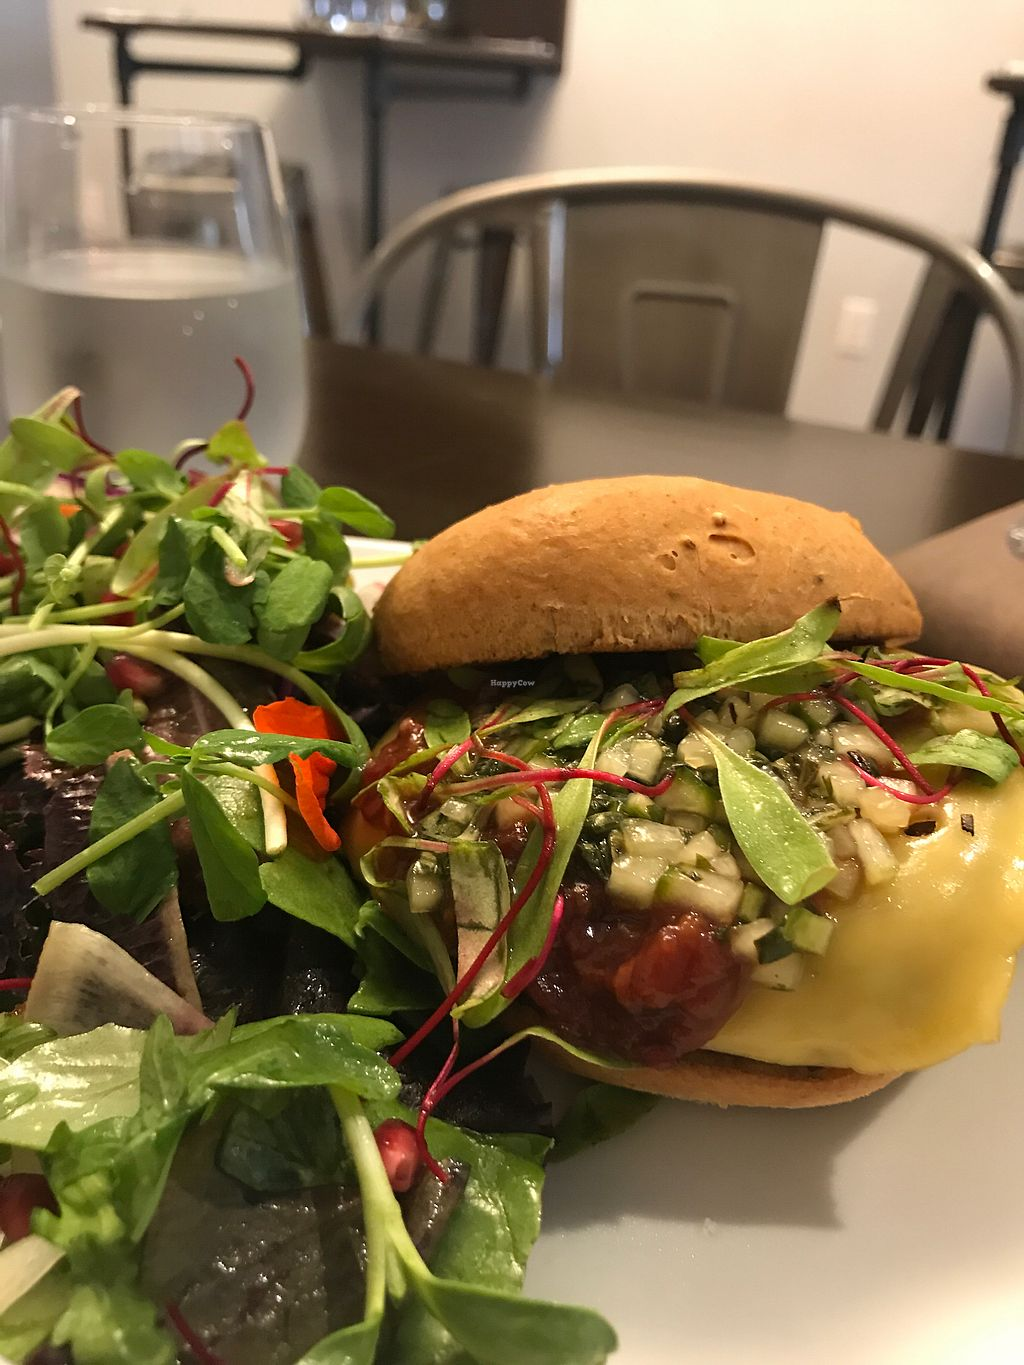 """Photo of CLOSED: Solasta Foods  by <a href=""""/members/profile/Charliepenn"""">Charliepenn</a> <br/>Mushroom burger with """"smoked gouda"""" <br/> November 13, 2017  - <a href='/contact/abuse/image/88402/325365'>Report</a>"""